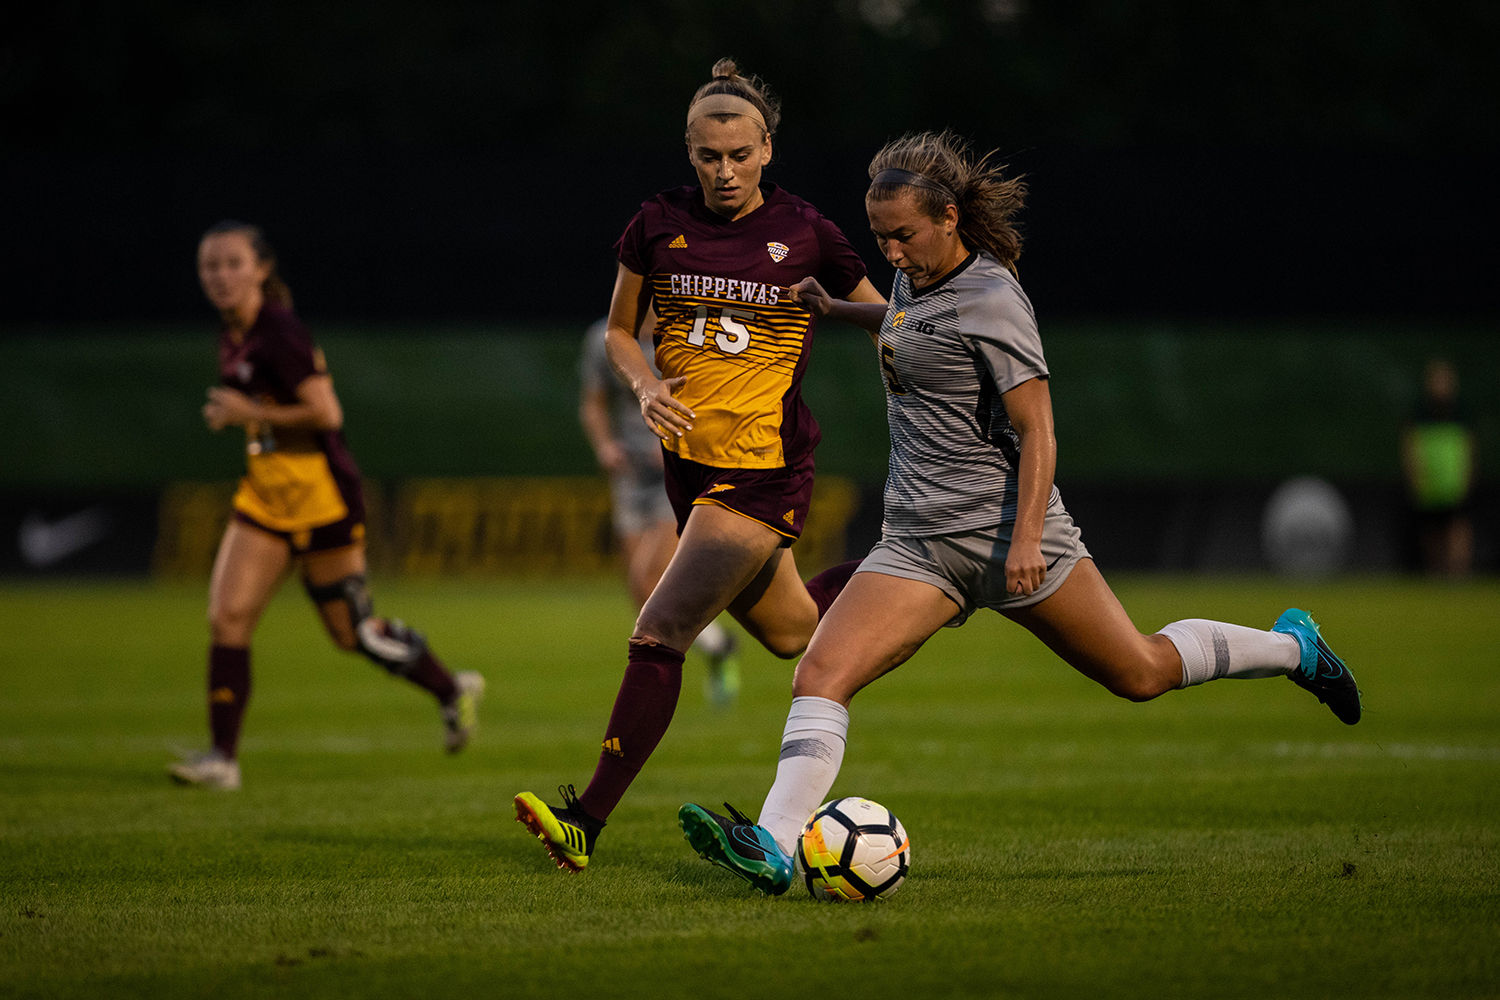 Iowa defender Riley Whitaker crosses the ball during Iowa's game against Central Michigan on Friday, Aug. 31, 2018. The Hawkeyes defeated the Chippewas 3-1.